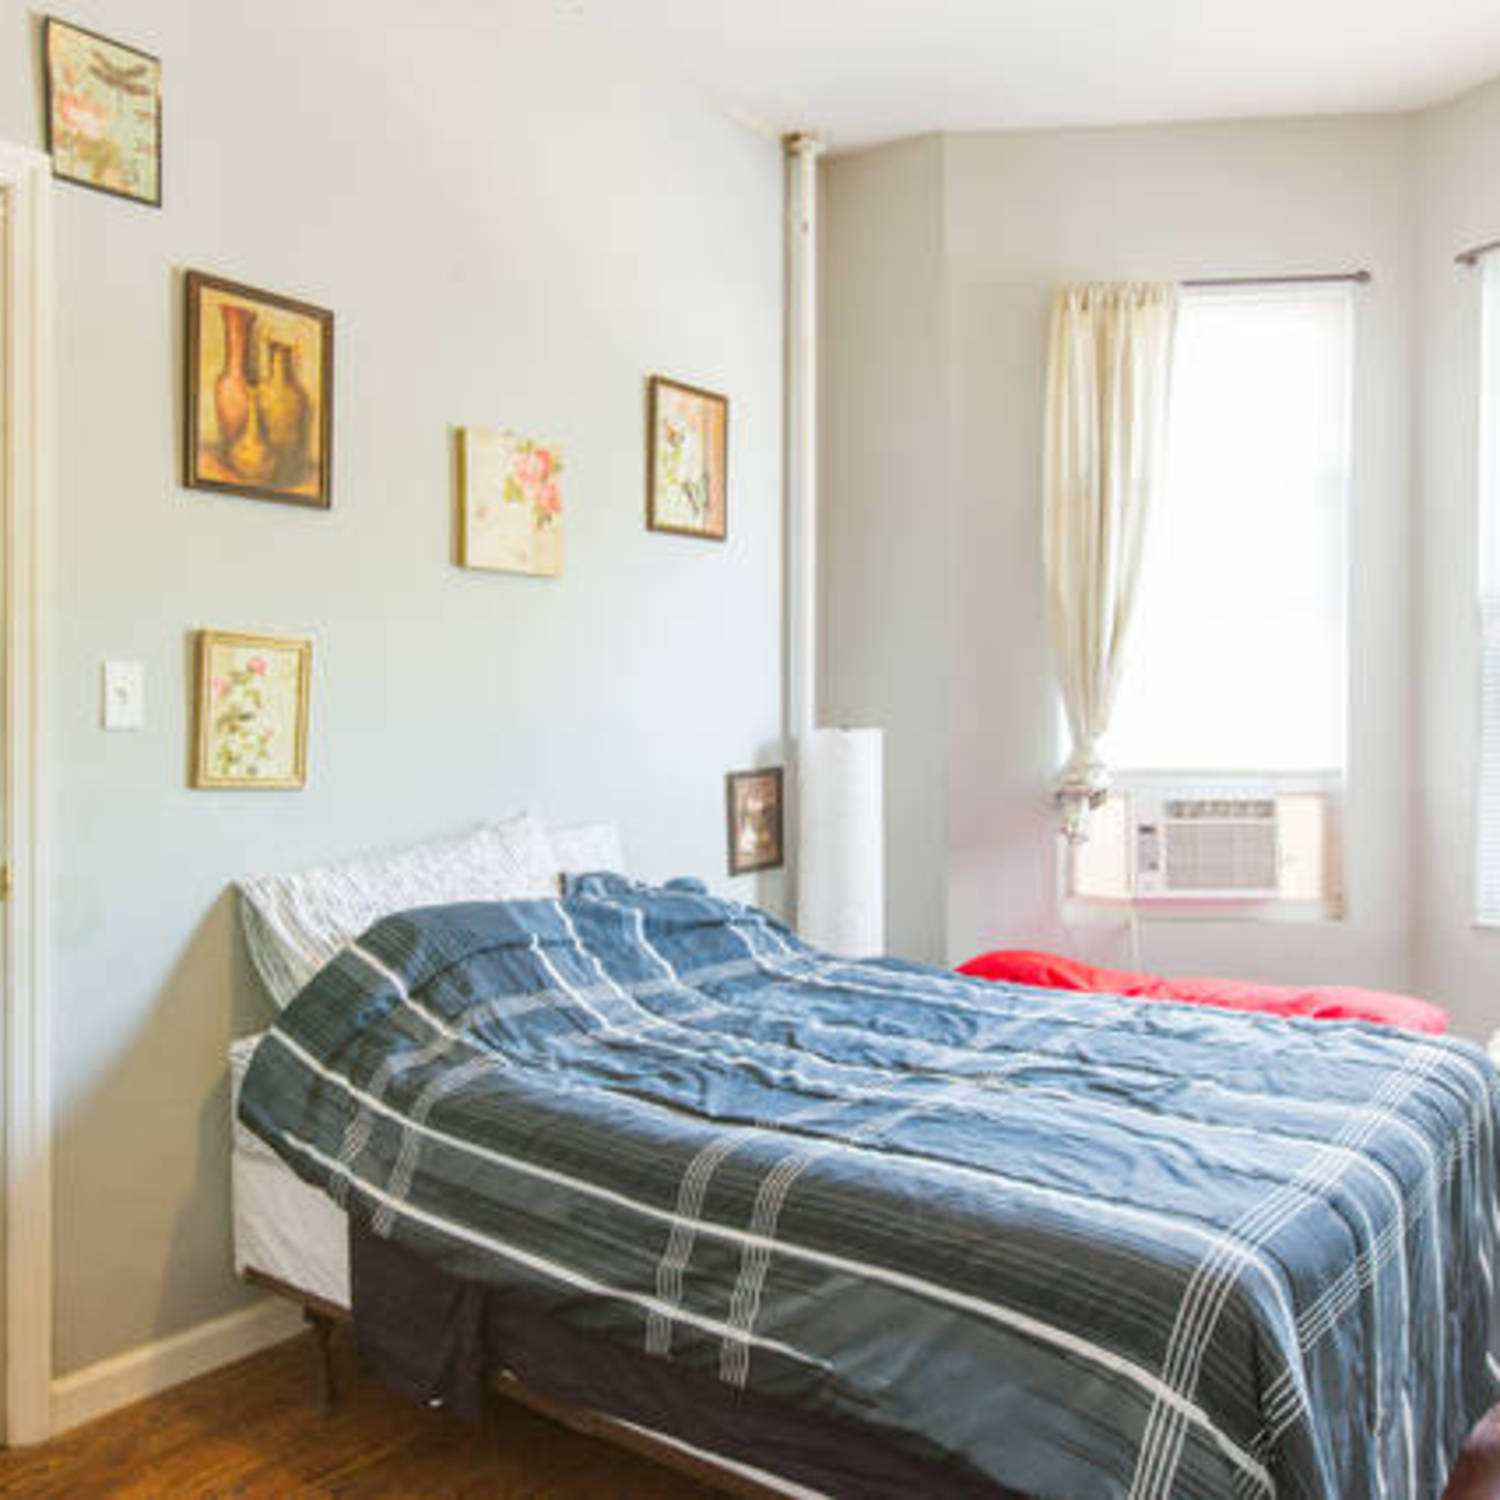 cozy furniture brooklyn. Cozy Private Room With Ensuite Bathroom, Short Term House In Brooklyn \u2013 Gloveler Furniture